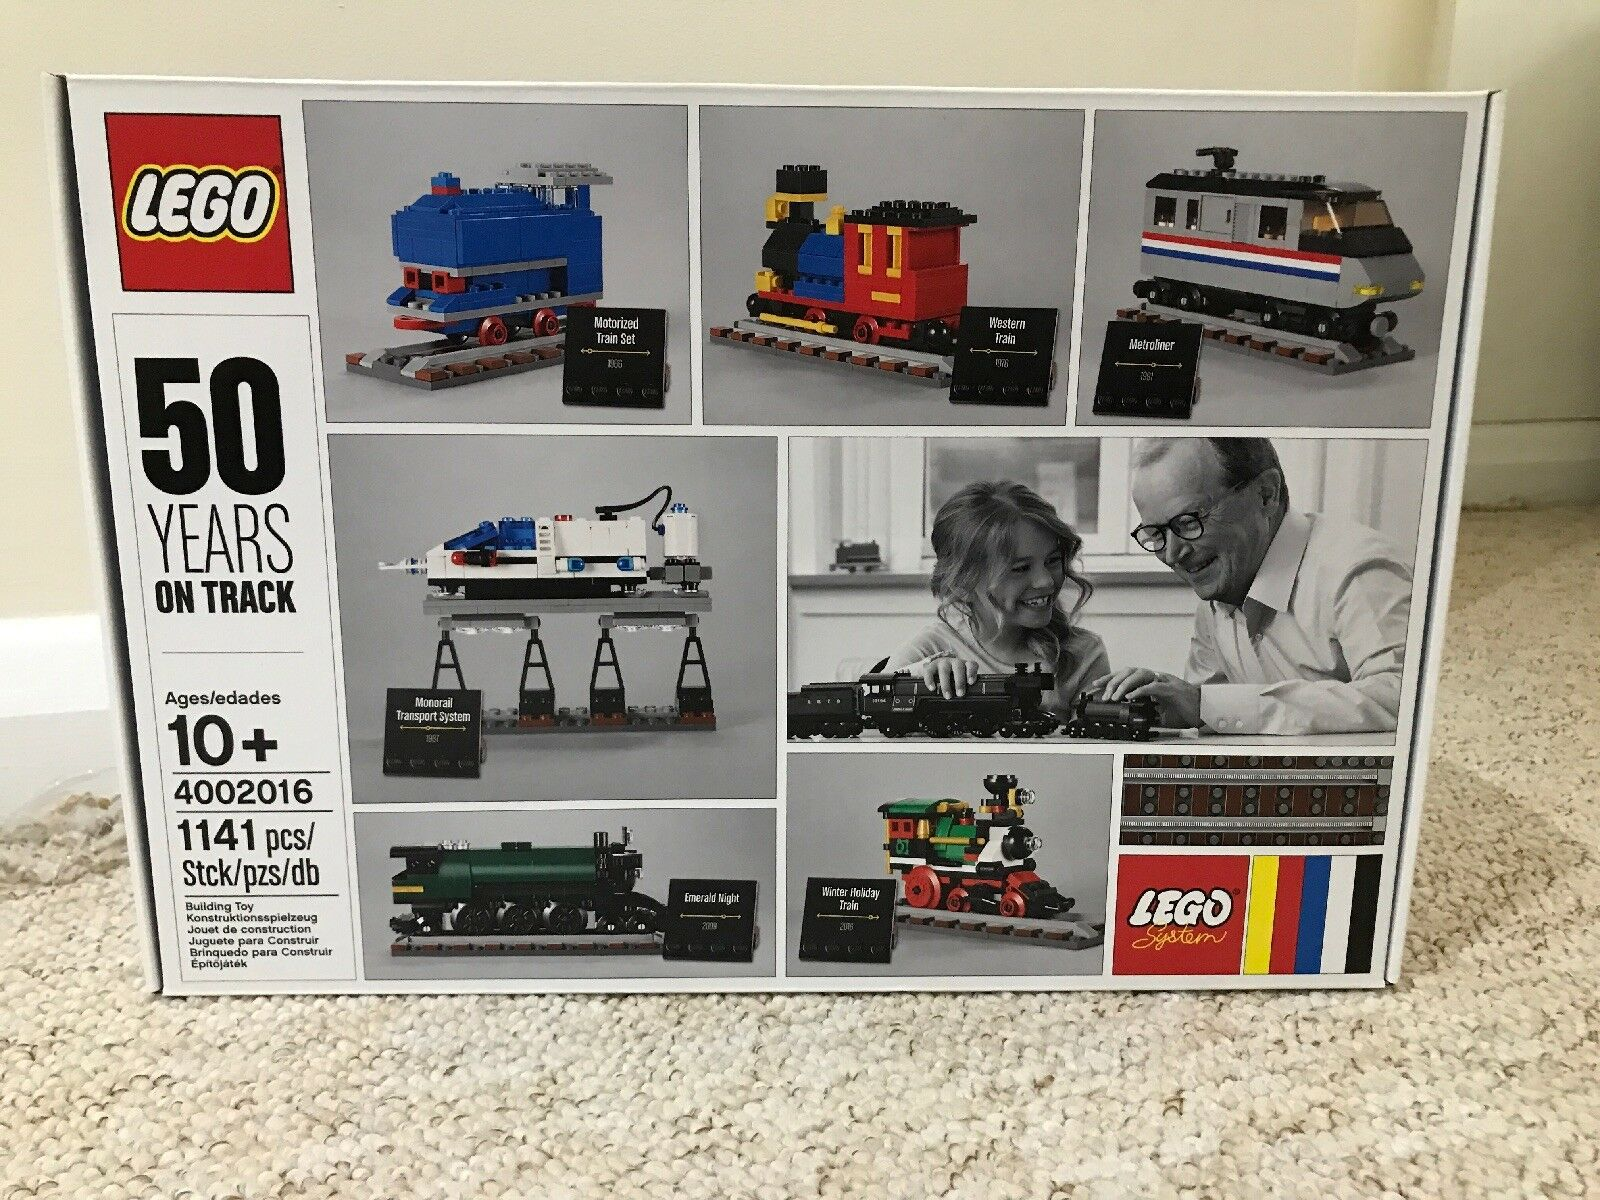 Lego 4002016 50 ans sur piste 2016 Employee gift Factory Sealed